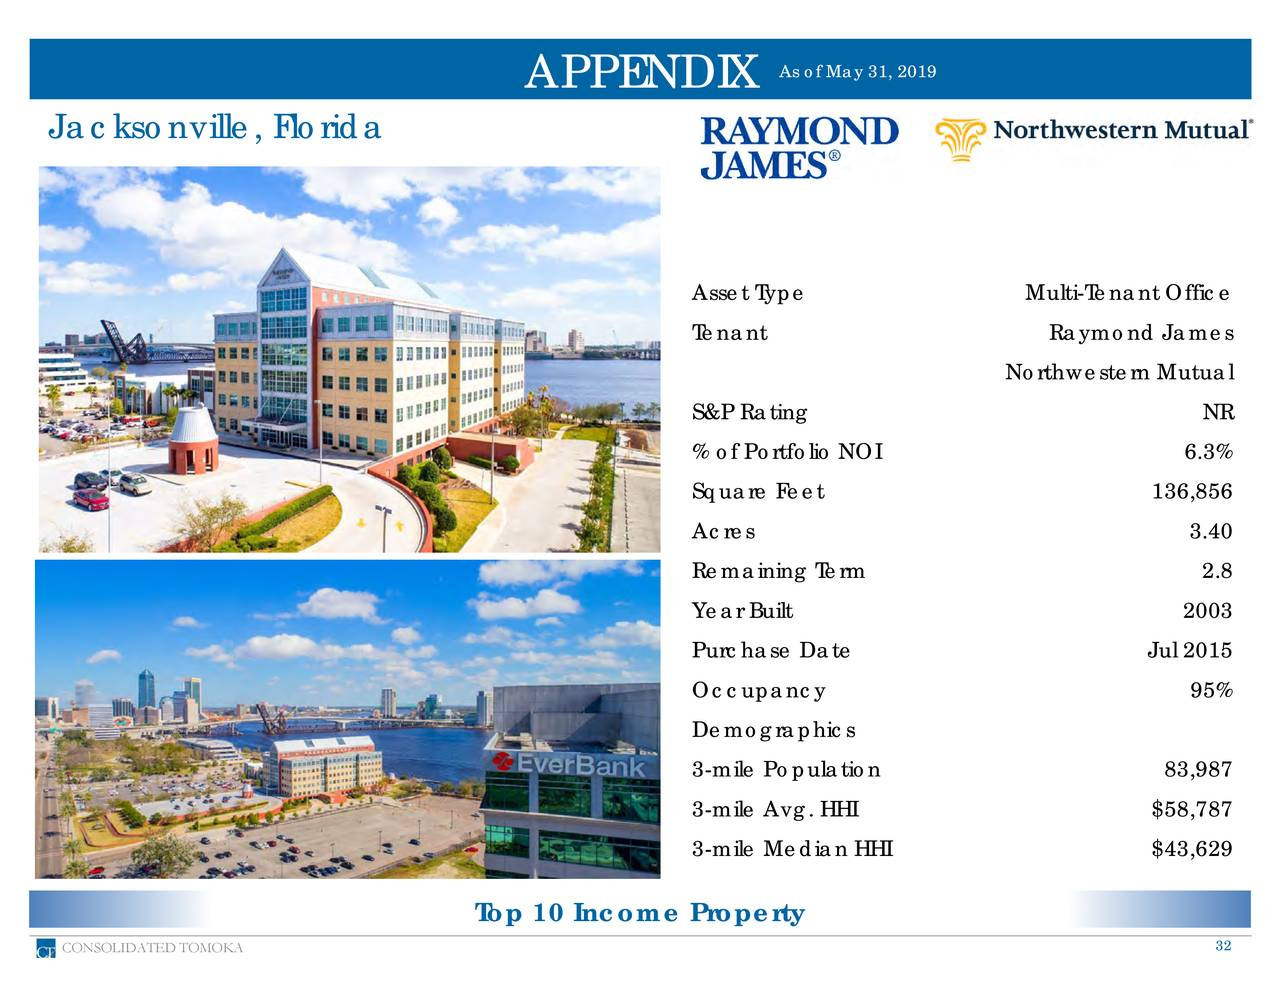 APPENDIX Jacksonville, Florida Asset Type Multi-Tenant Office Tenant Raymond James Northwestern Mutual S&P Rating NR % of Portfolio NOI 6.3% Square Feet 136,856 Acres 3.40 Remaining Term 2.8 Year Built 2003 Purchase Date Jul 2015 Occupancy 95% Demographics 3-mile Population 83,987 3-mile Avg. HHI $58,787 3-mile Median HHI $43,629 Top 10 Income Property CONSOLIDATED TOMOKA 32